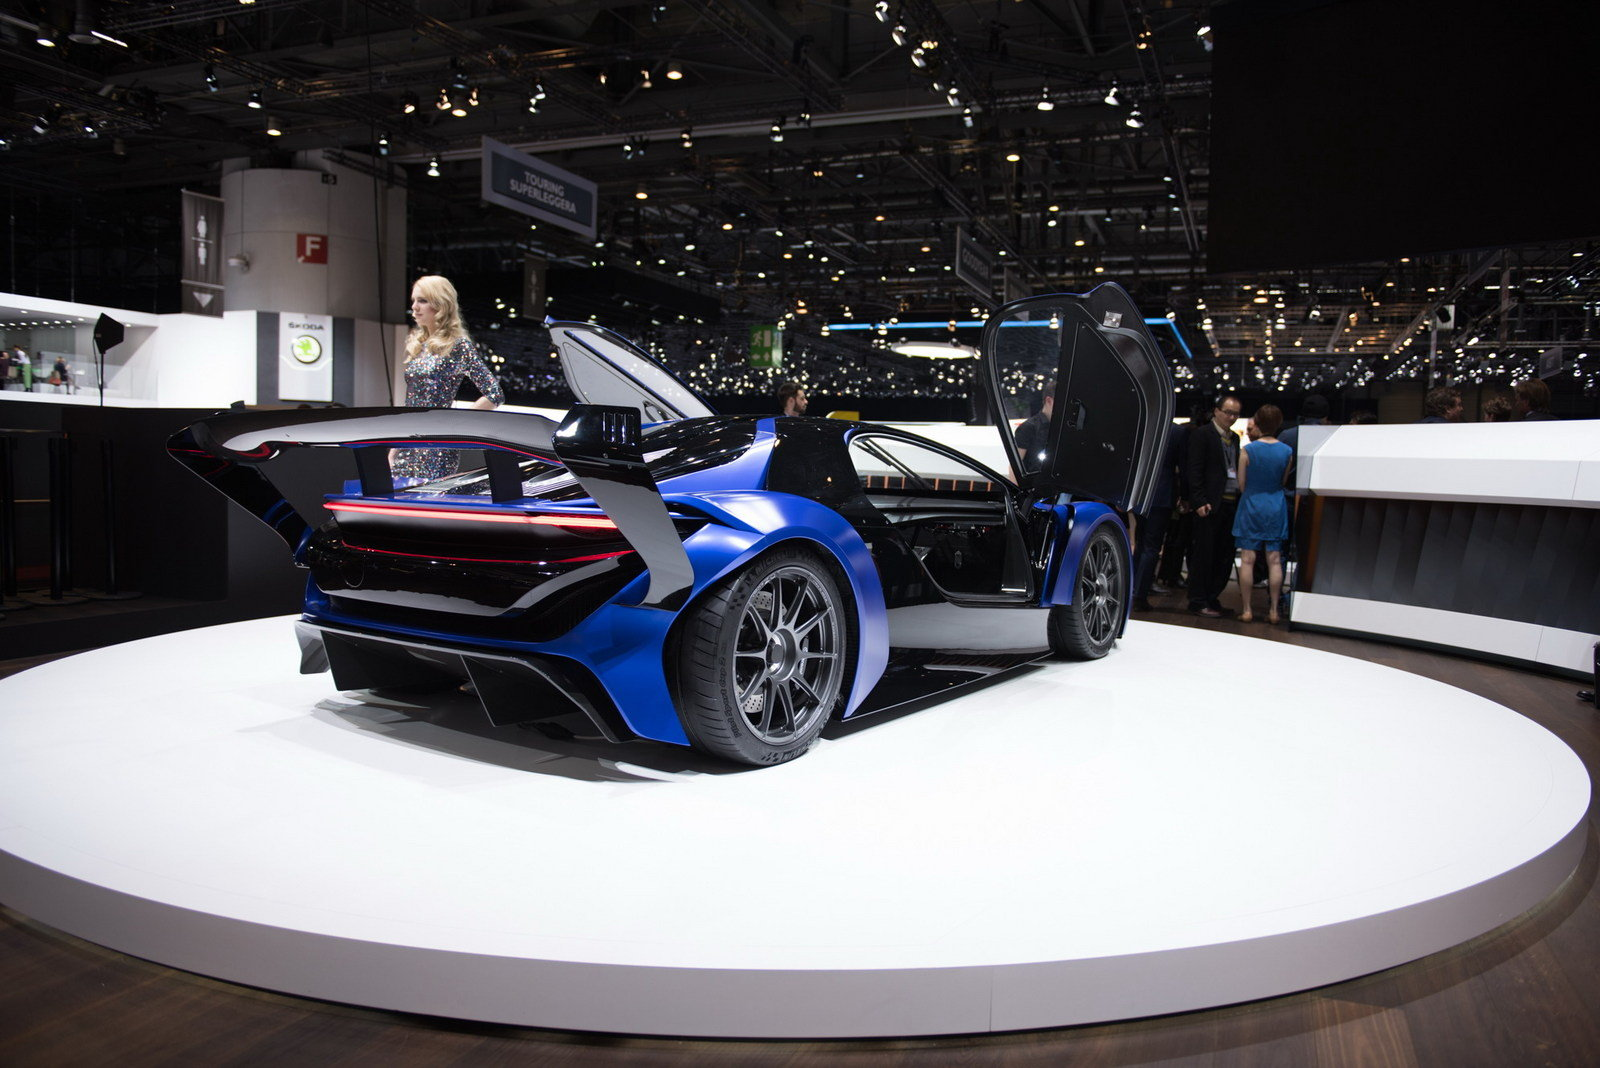 2016 Techrules At96 Trev Supercar Concept: 2016 Techrules AT96 TREV - Picture 668541